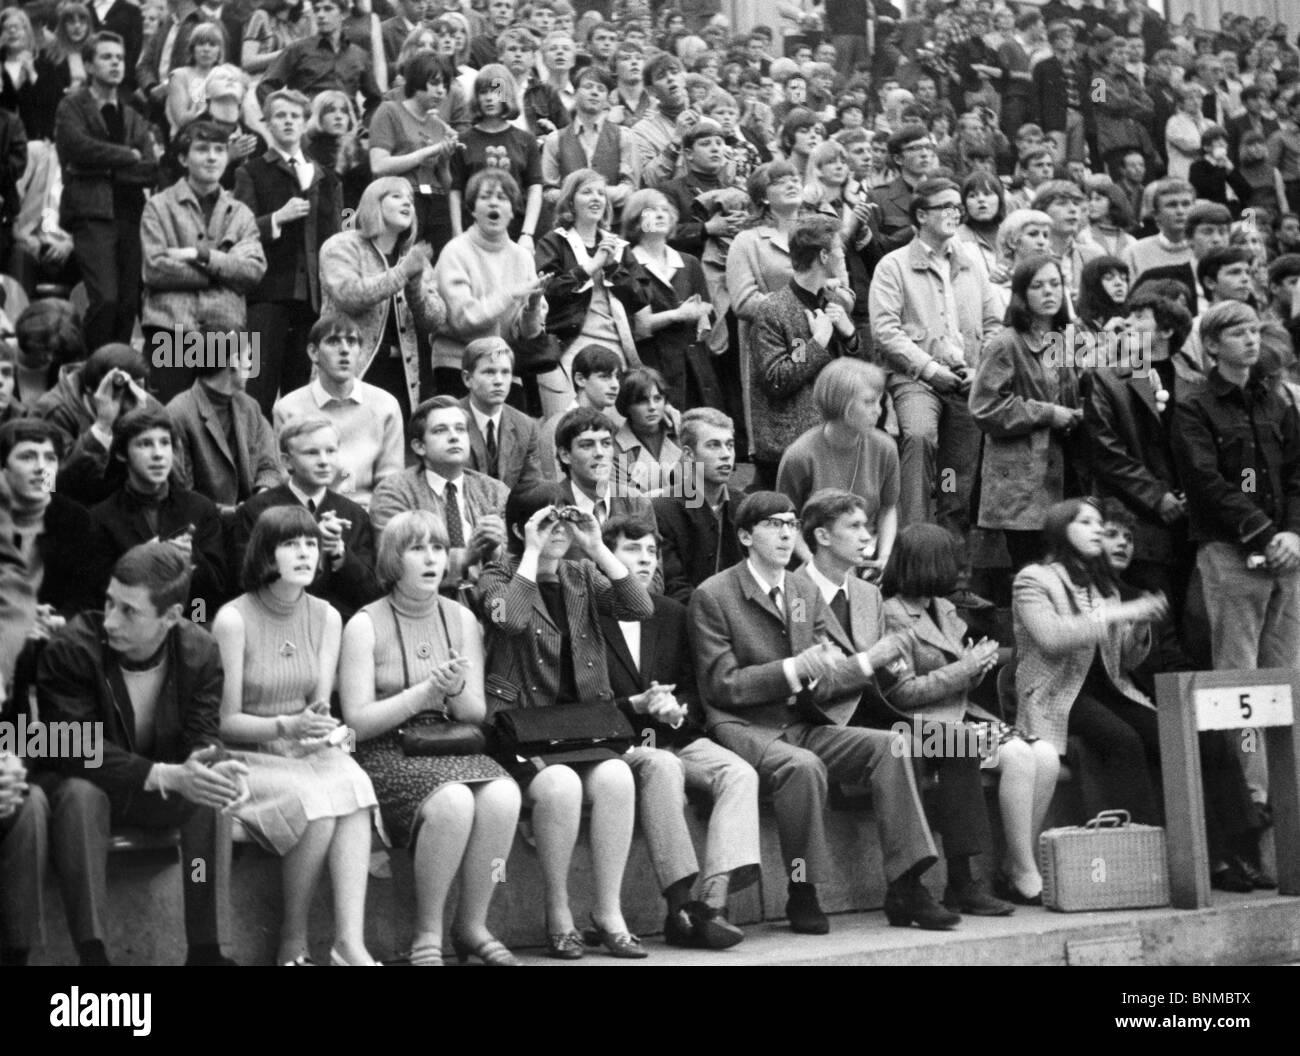 1960th 1966 Sixties follower fans excitement beat concert the Beatles enthusiasm Germany emotions Essen Grugahalle - Stock Image